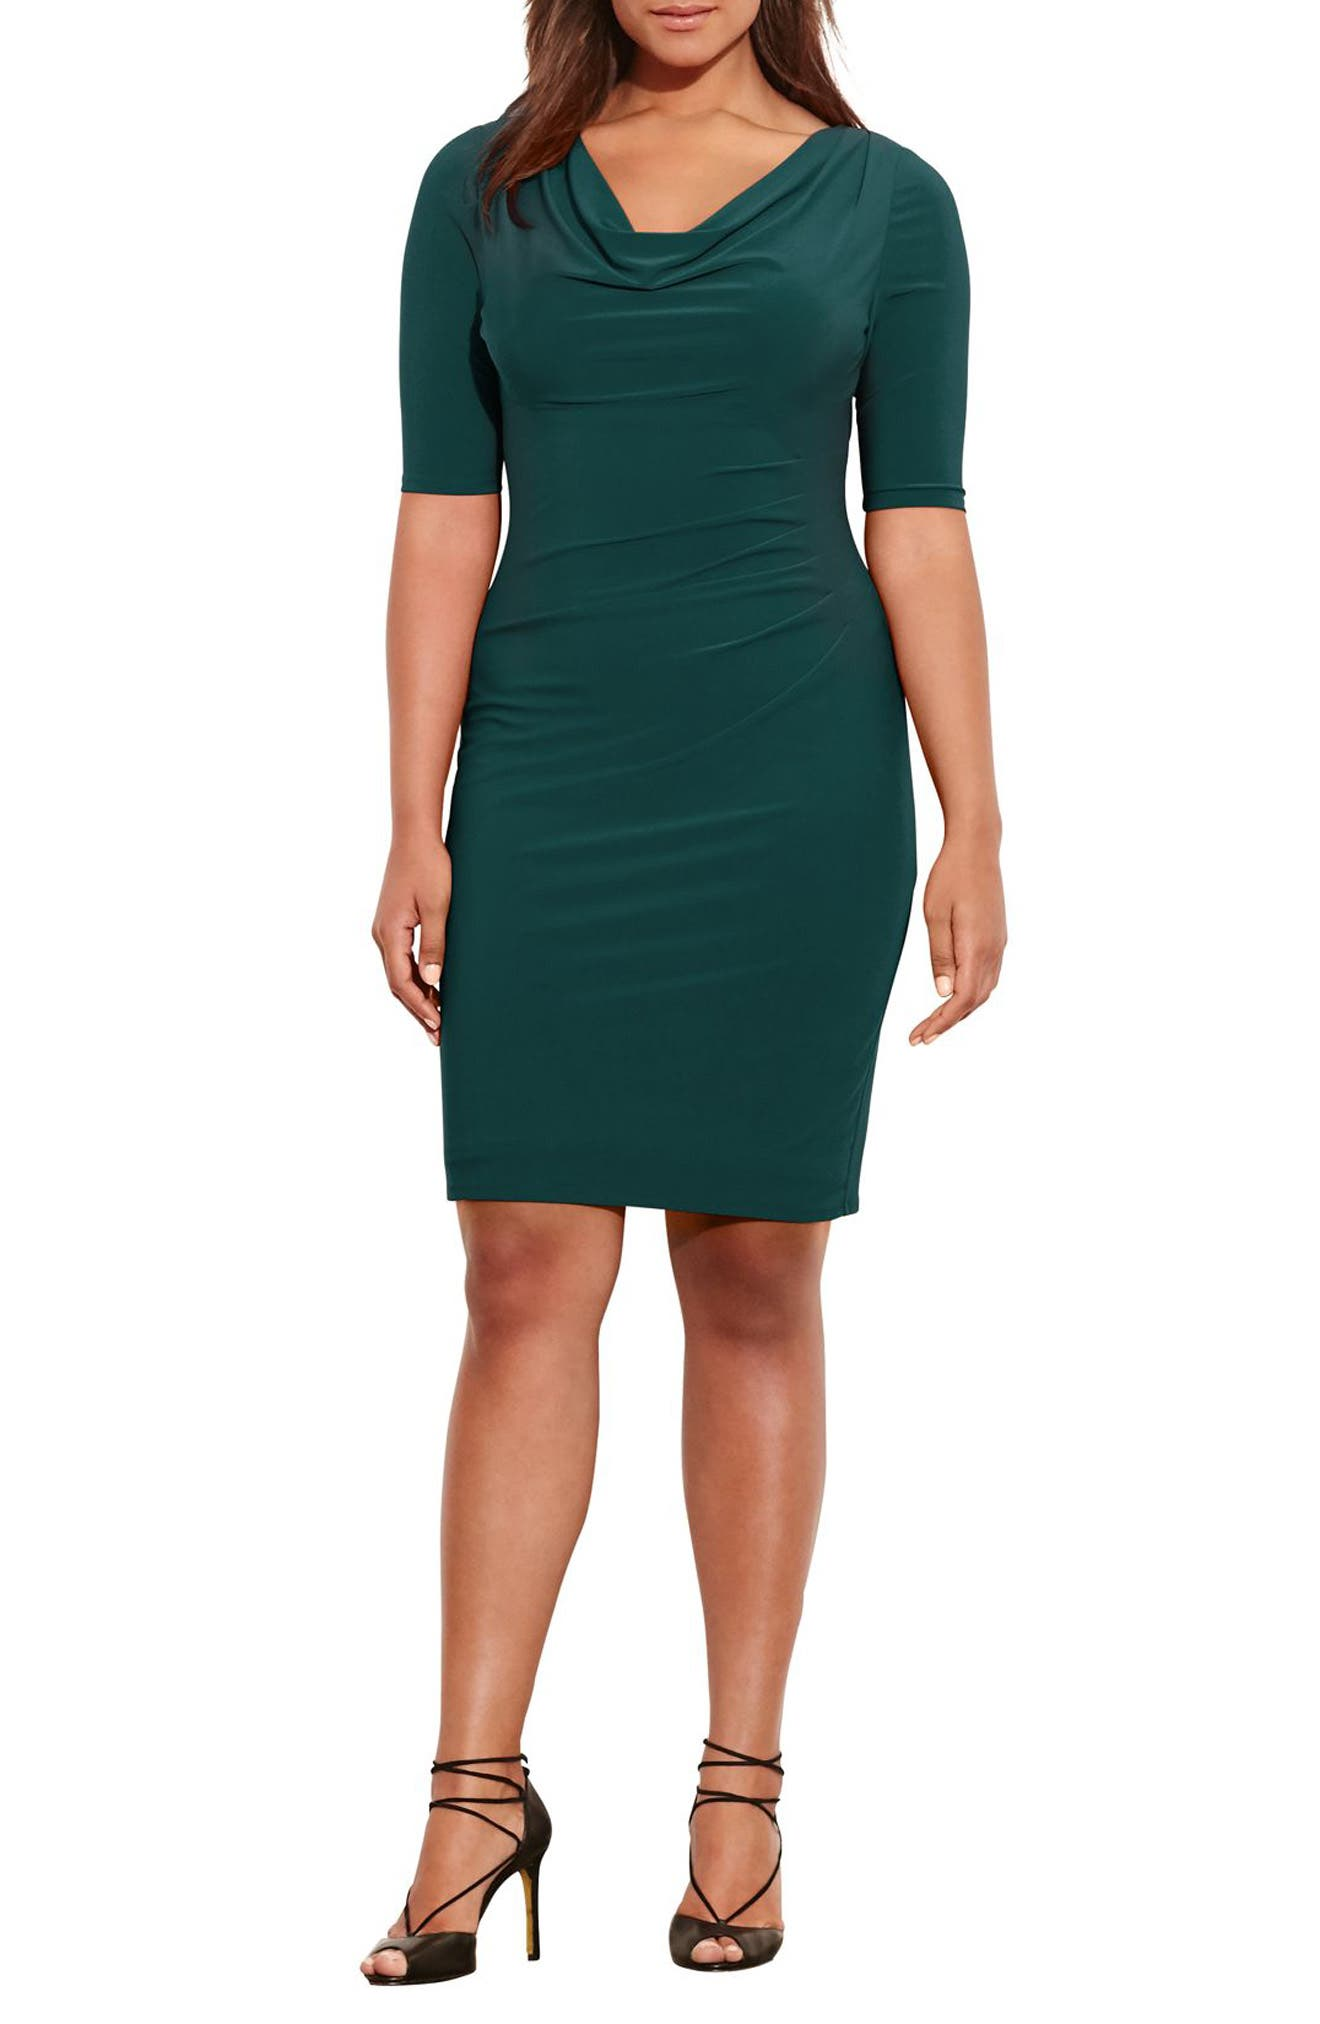 Carleton Cowl Neck Jersey Dress,                             Main thumbnail 1, color,                             300